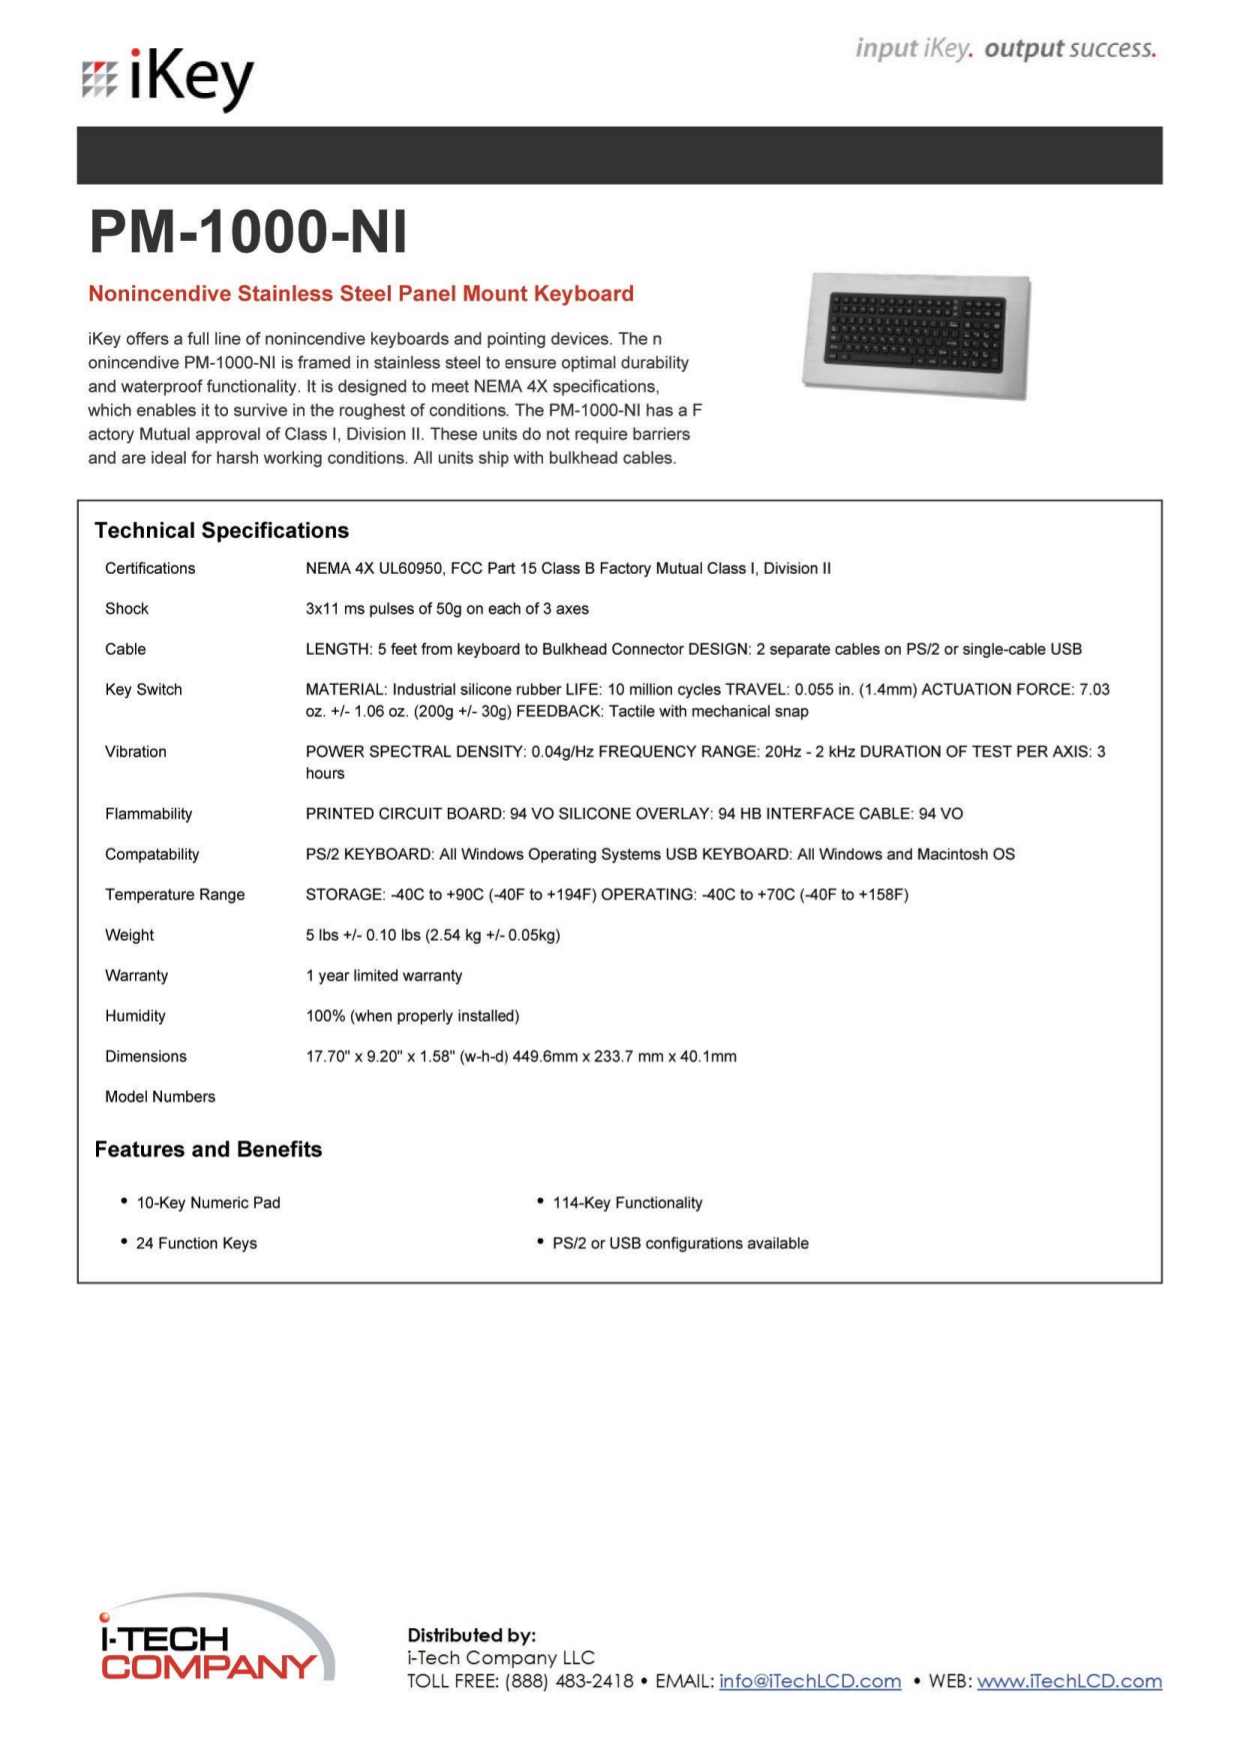 pdf for iKey Keyboard PM-1000 manual